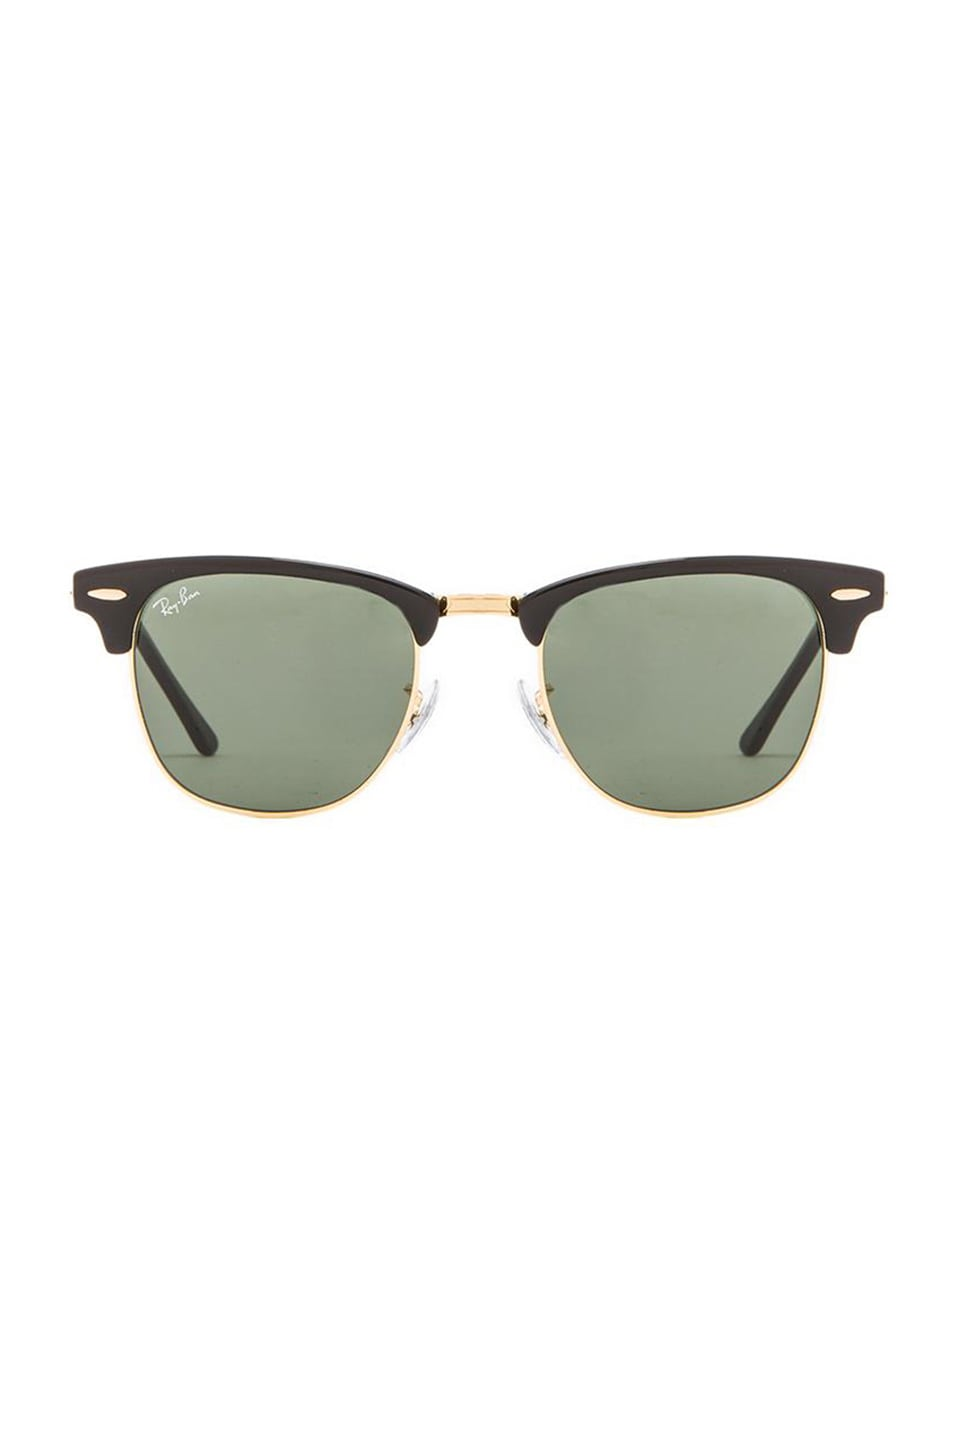 Ray-Ban Clubmaster Classic in Black